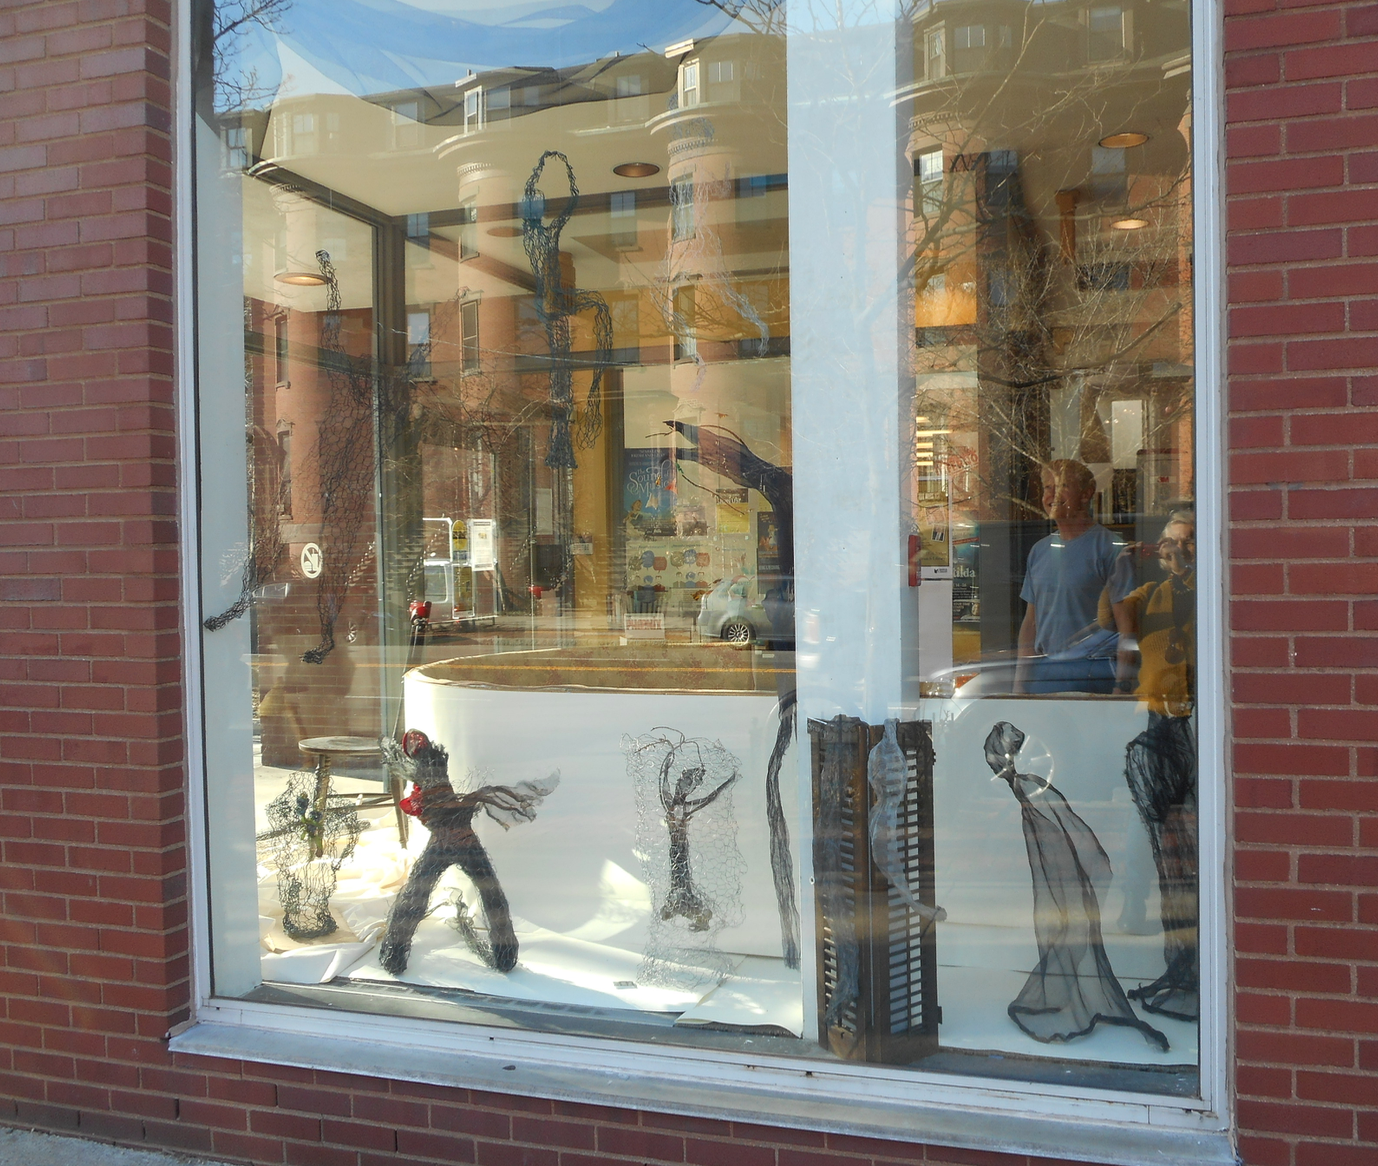 A work-n-progress. Wire Sculptor Will Corcoran contemplates next moves for the window installation of the SE branch on Tremont Street